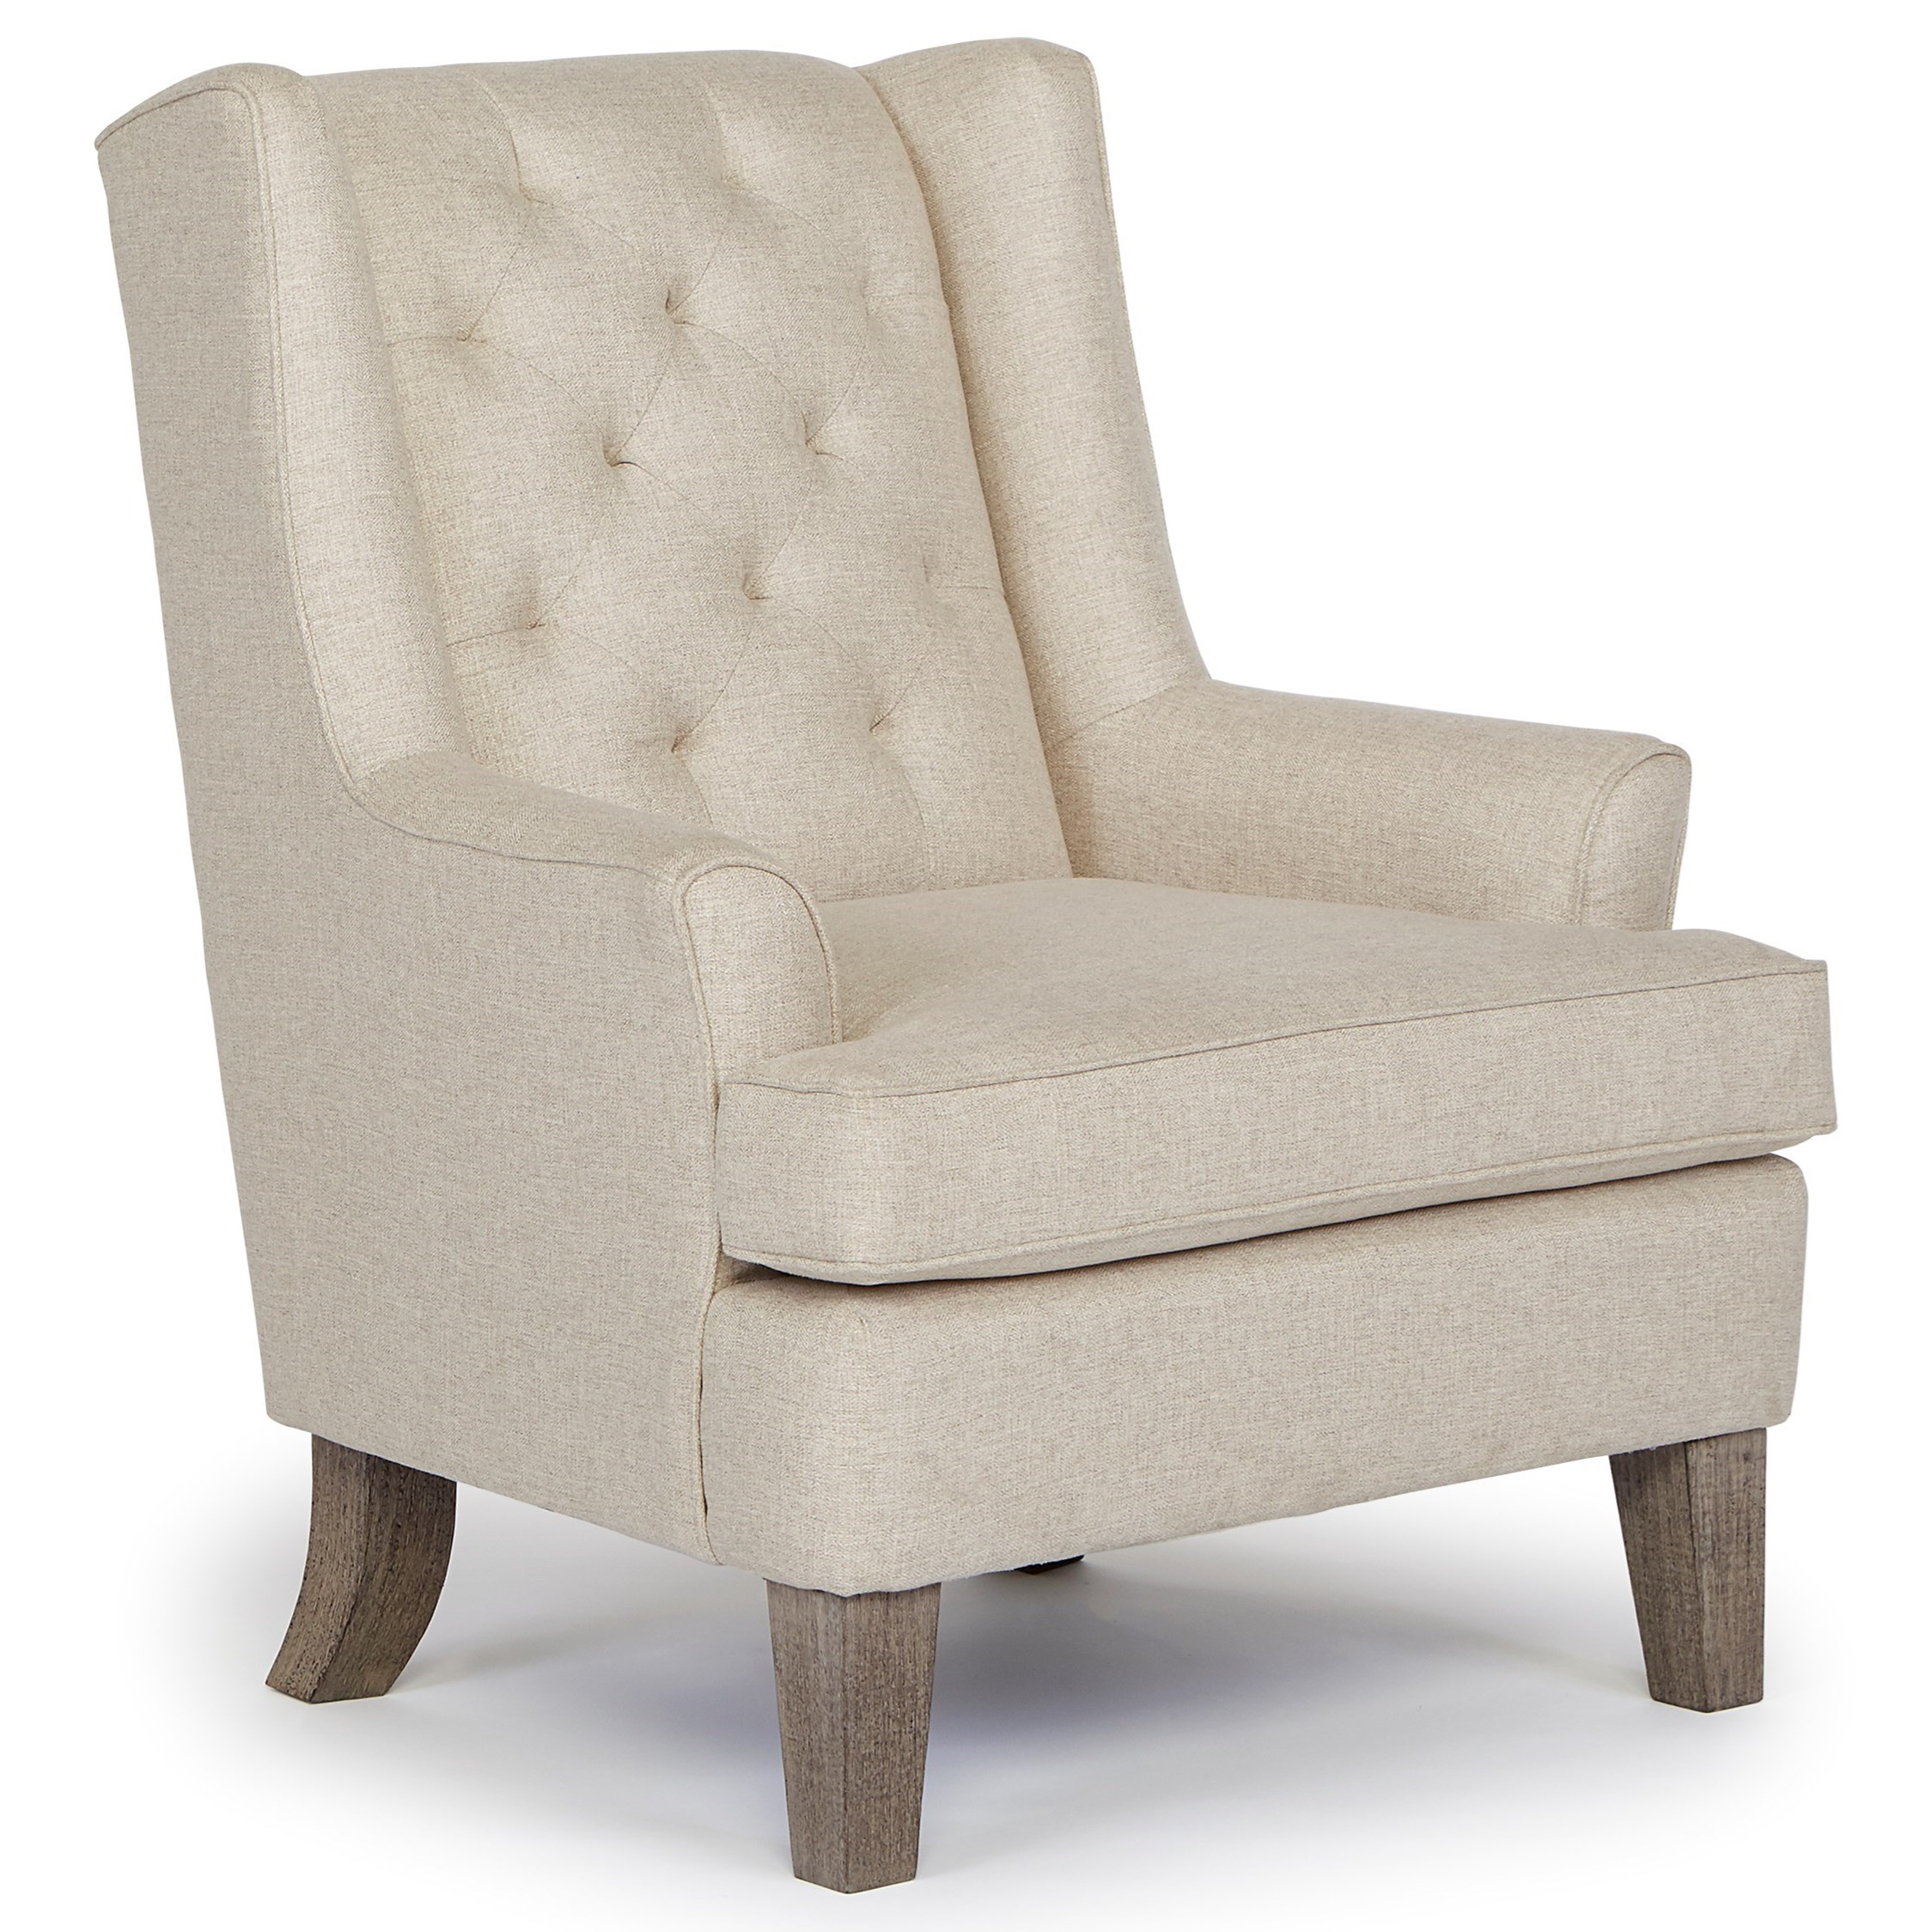 Elegant Rebecca Wing Chair With Tufted Back